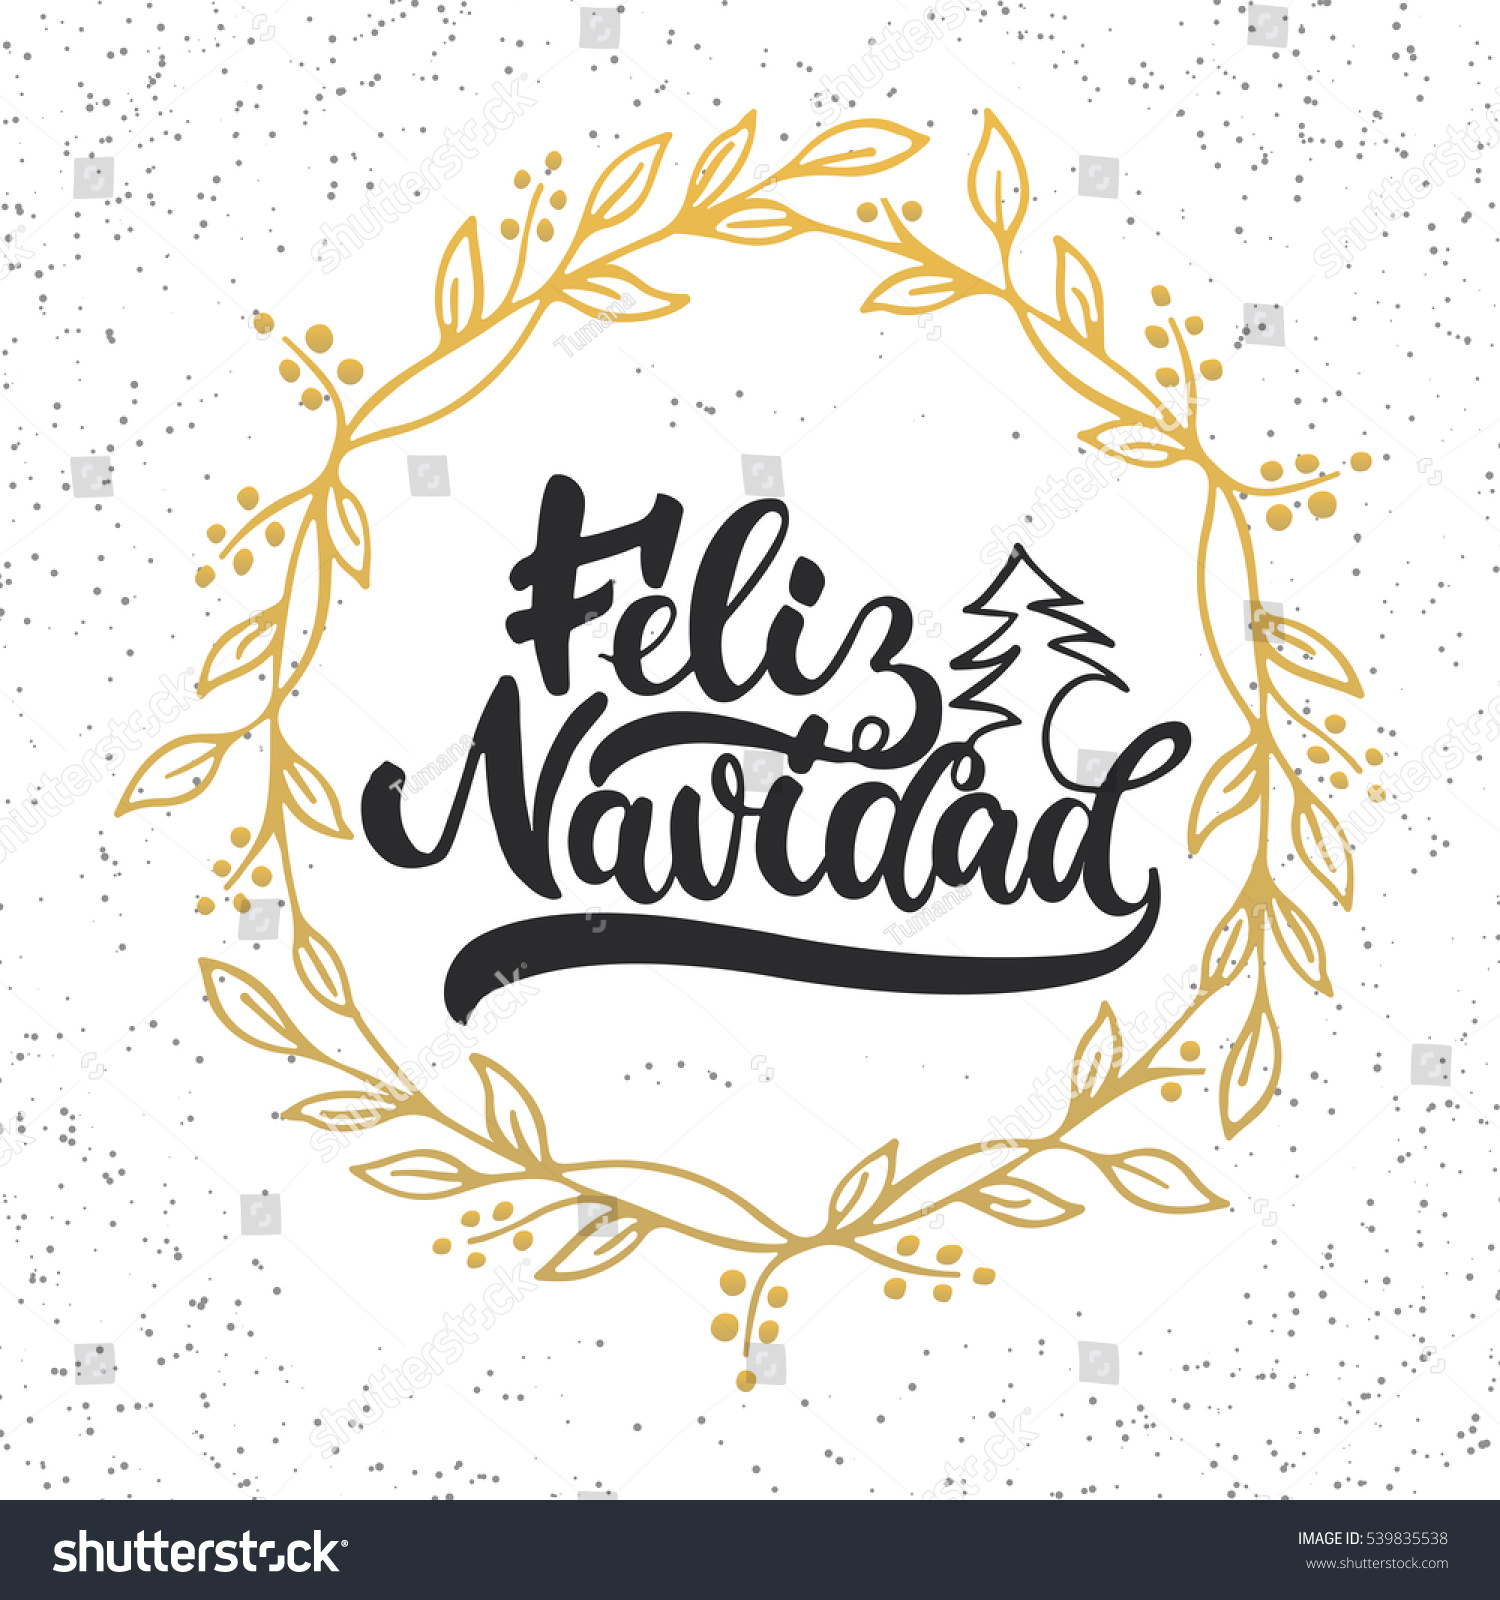 Feliz Navidad Lettering Christmas New Year Stock Vector ...